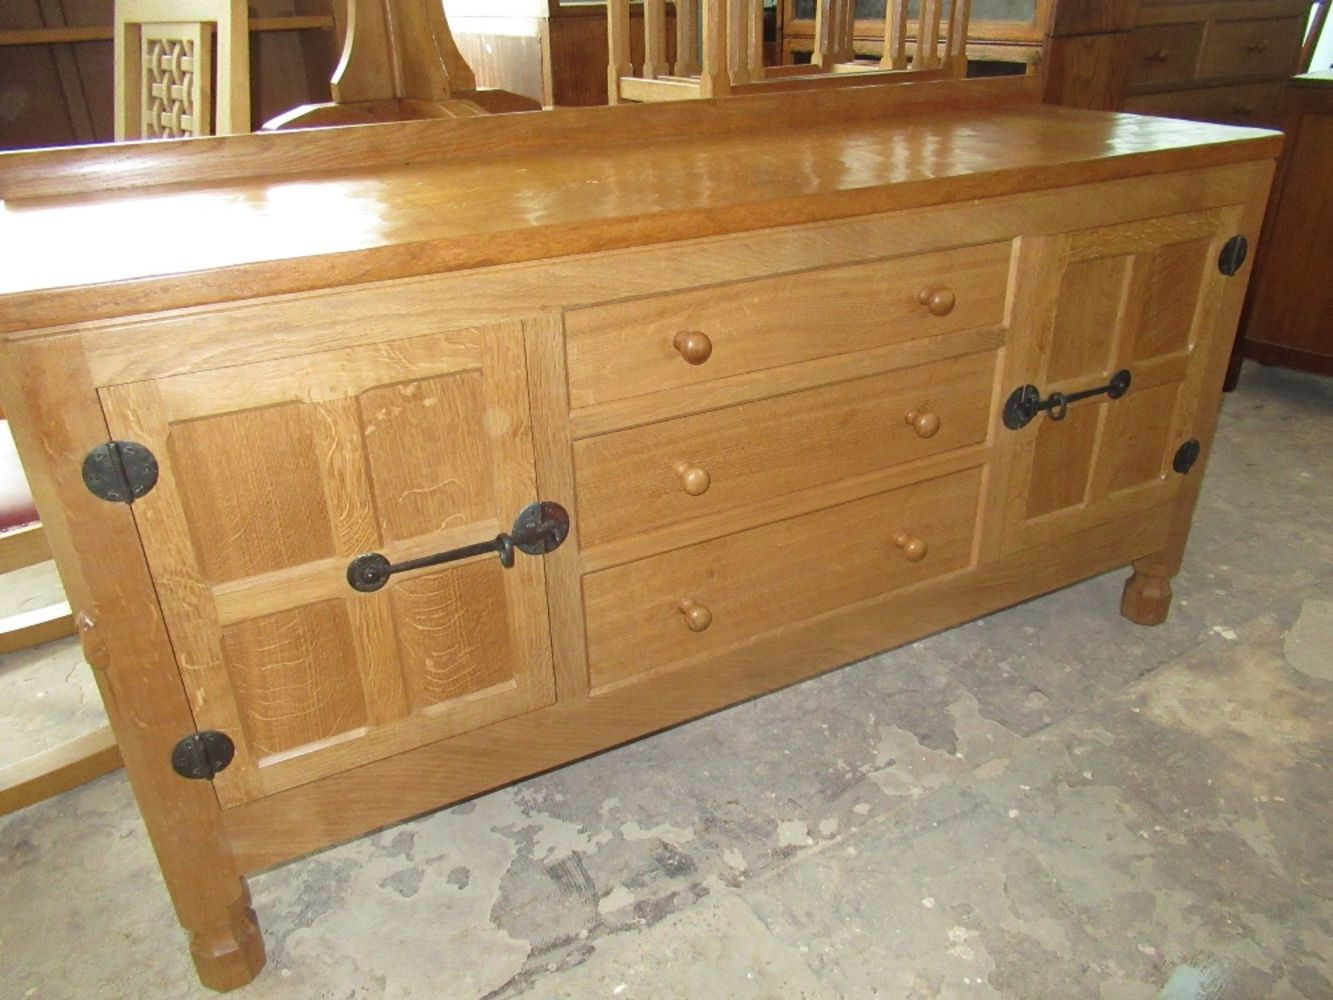 Country House sale including Mouseman and other furniture, silver, jewellery, pictures etc.